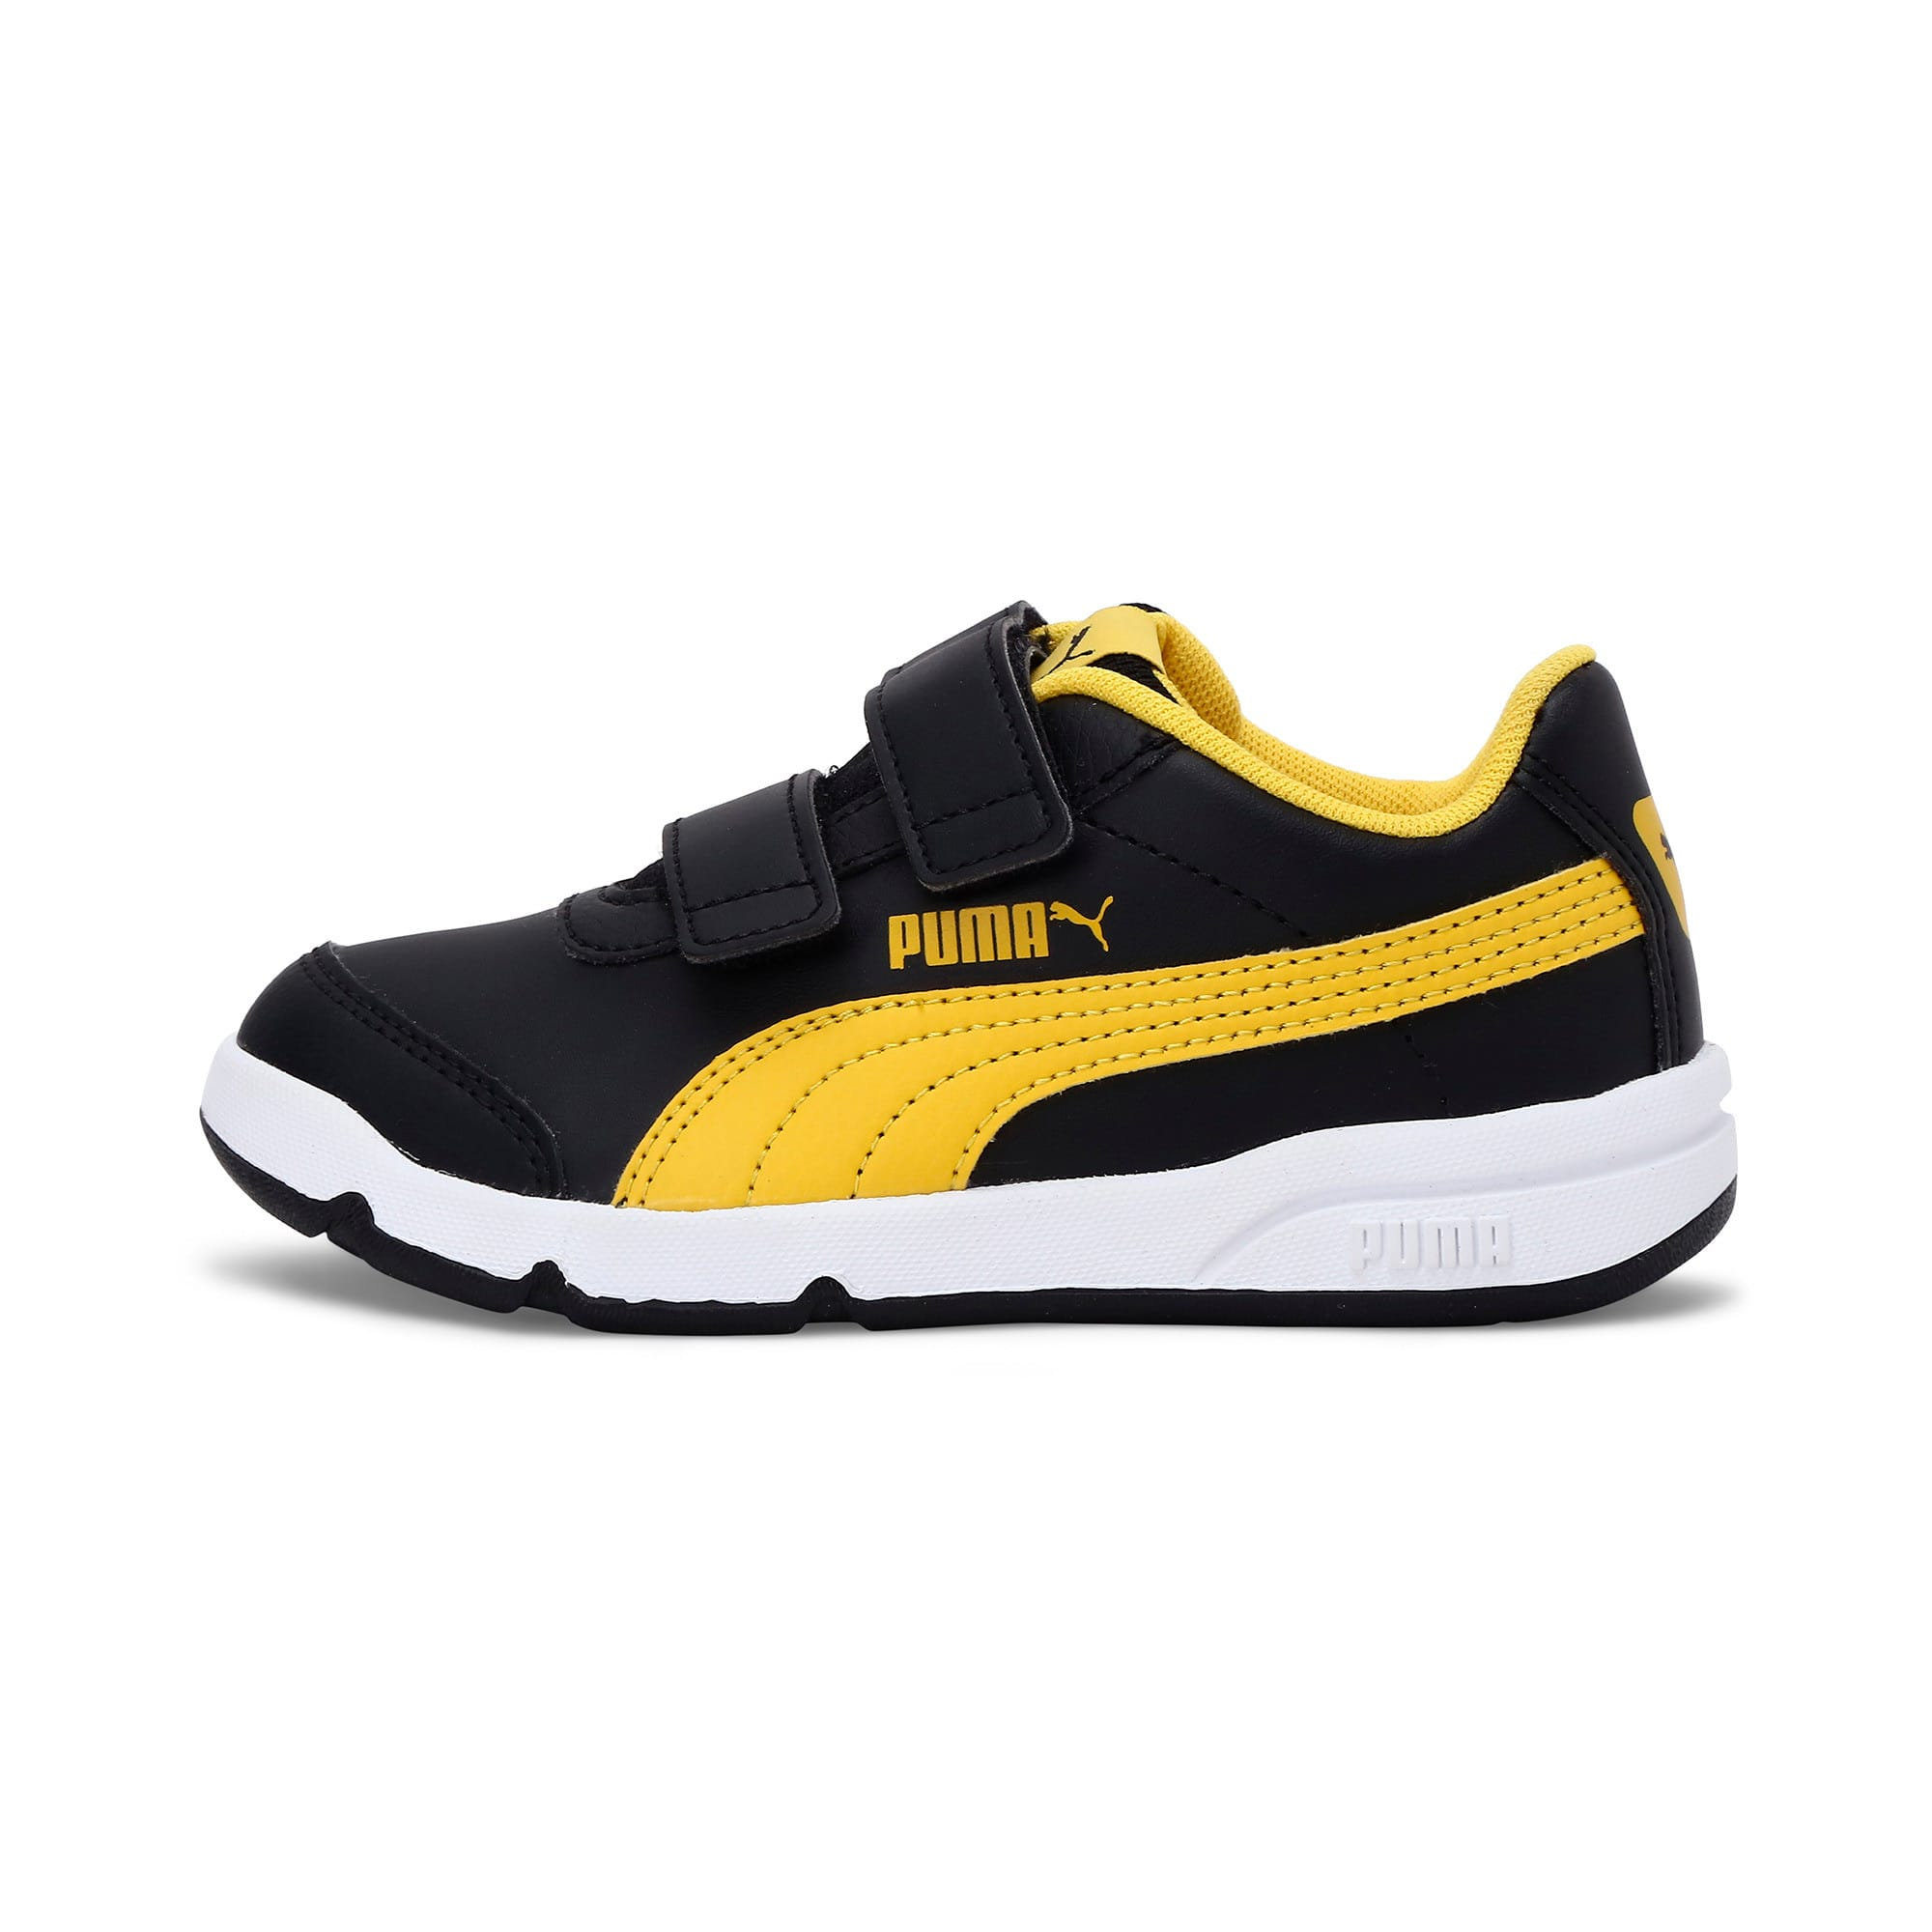 Thumbnail 1 of Stepfleex 2 SL VE V Kids' Trainers, Puma Black-Sulphur-White, medium-IND